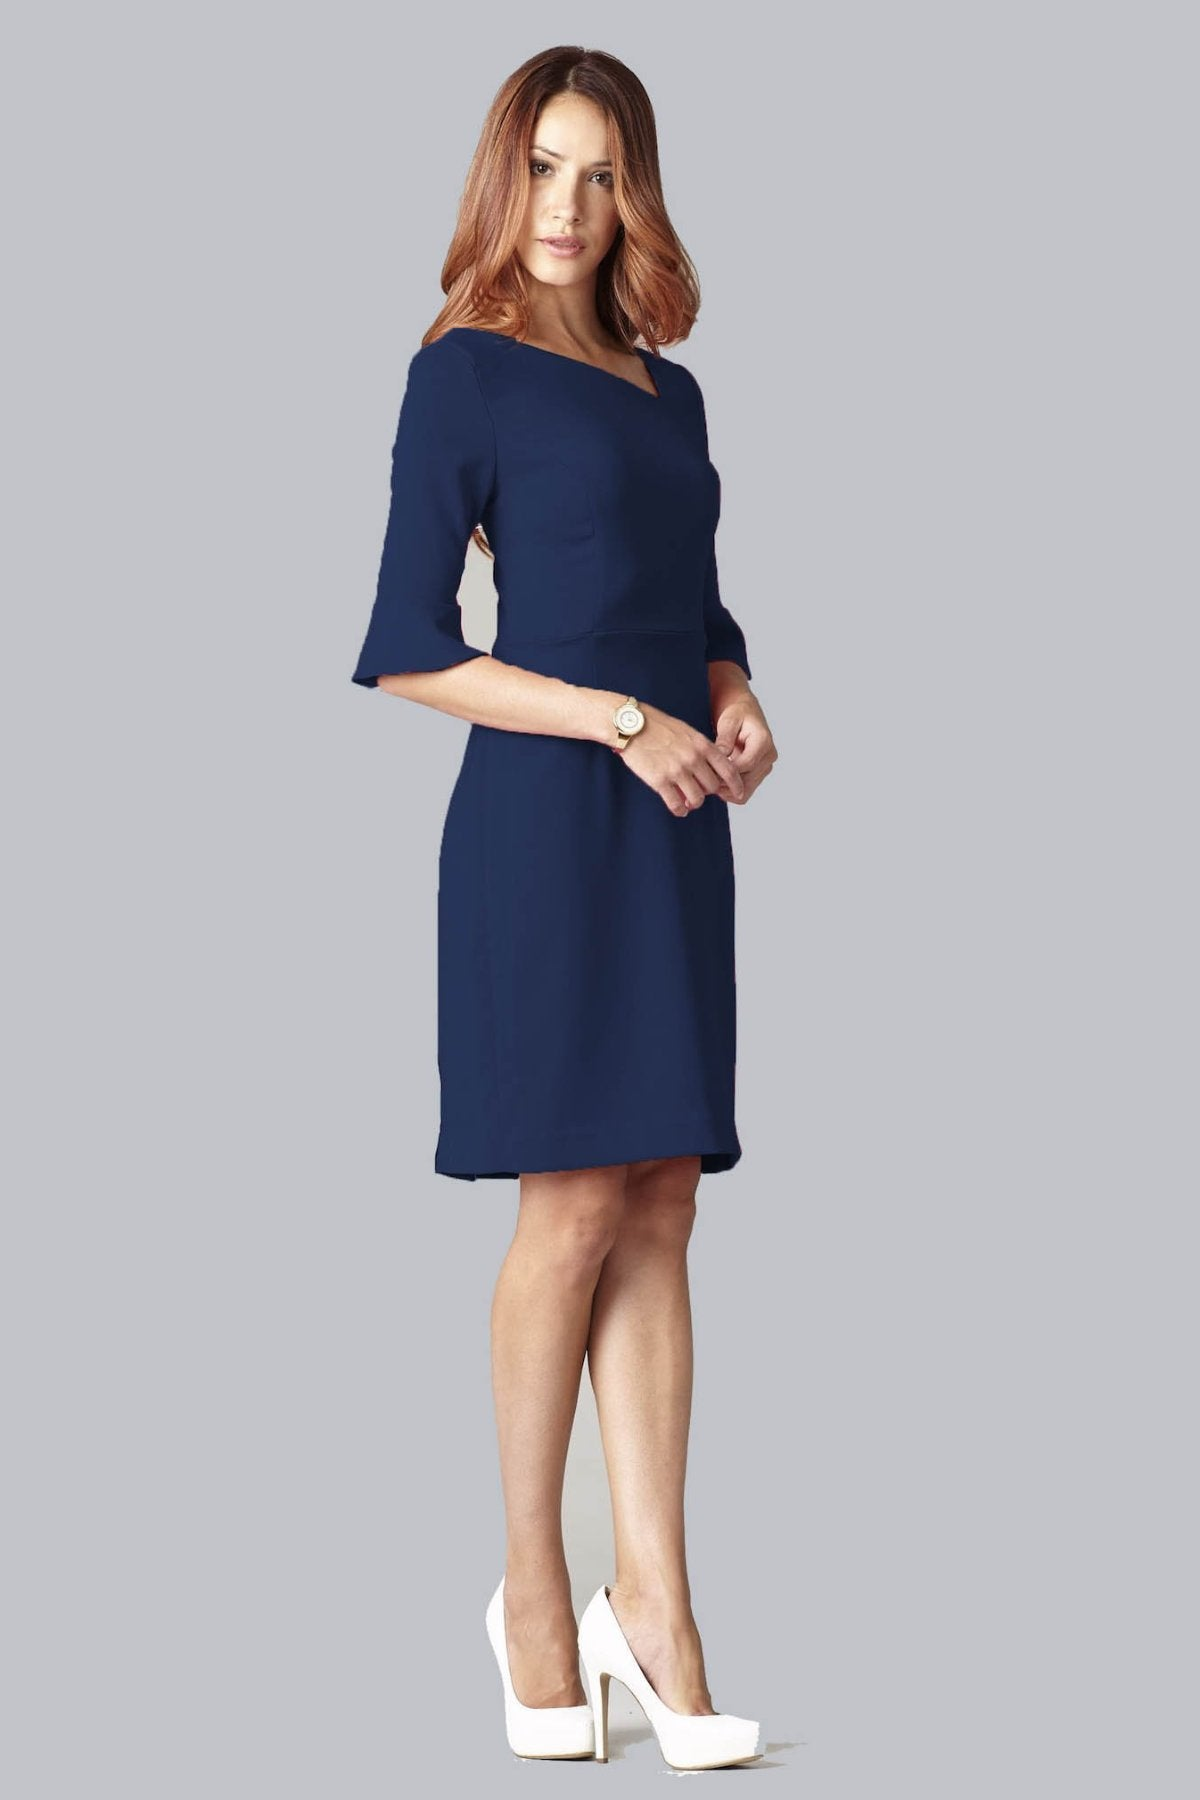 Kate Bell Sleeve Dress - Navy